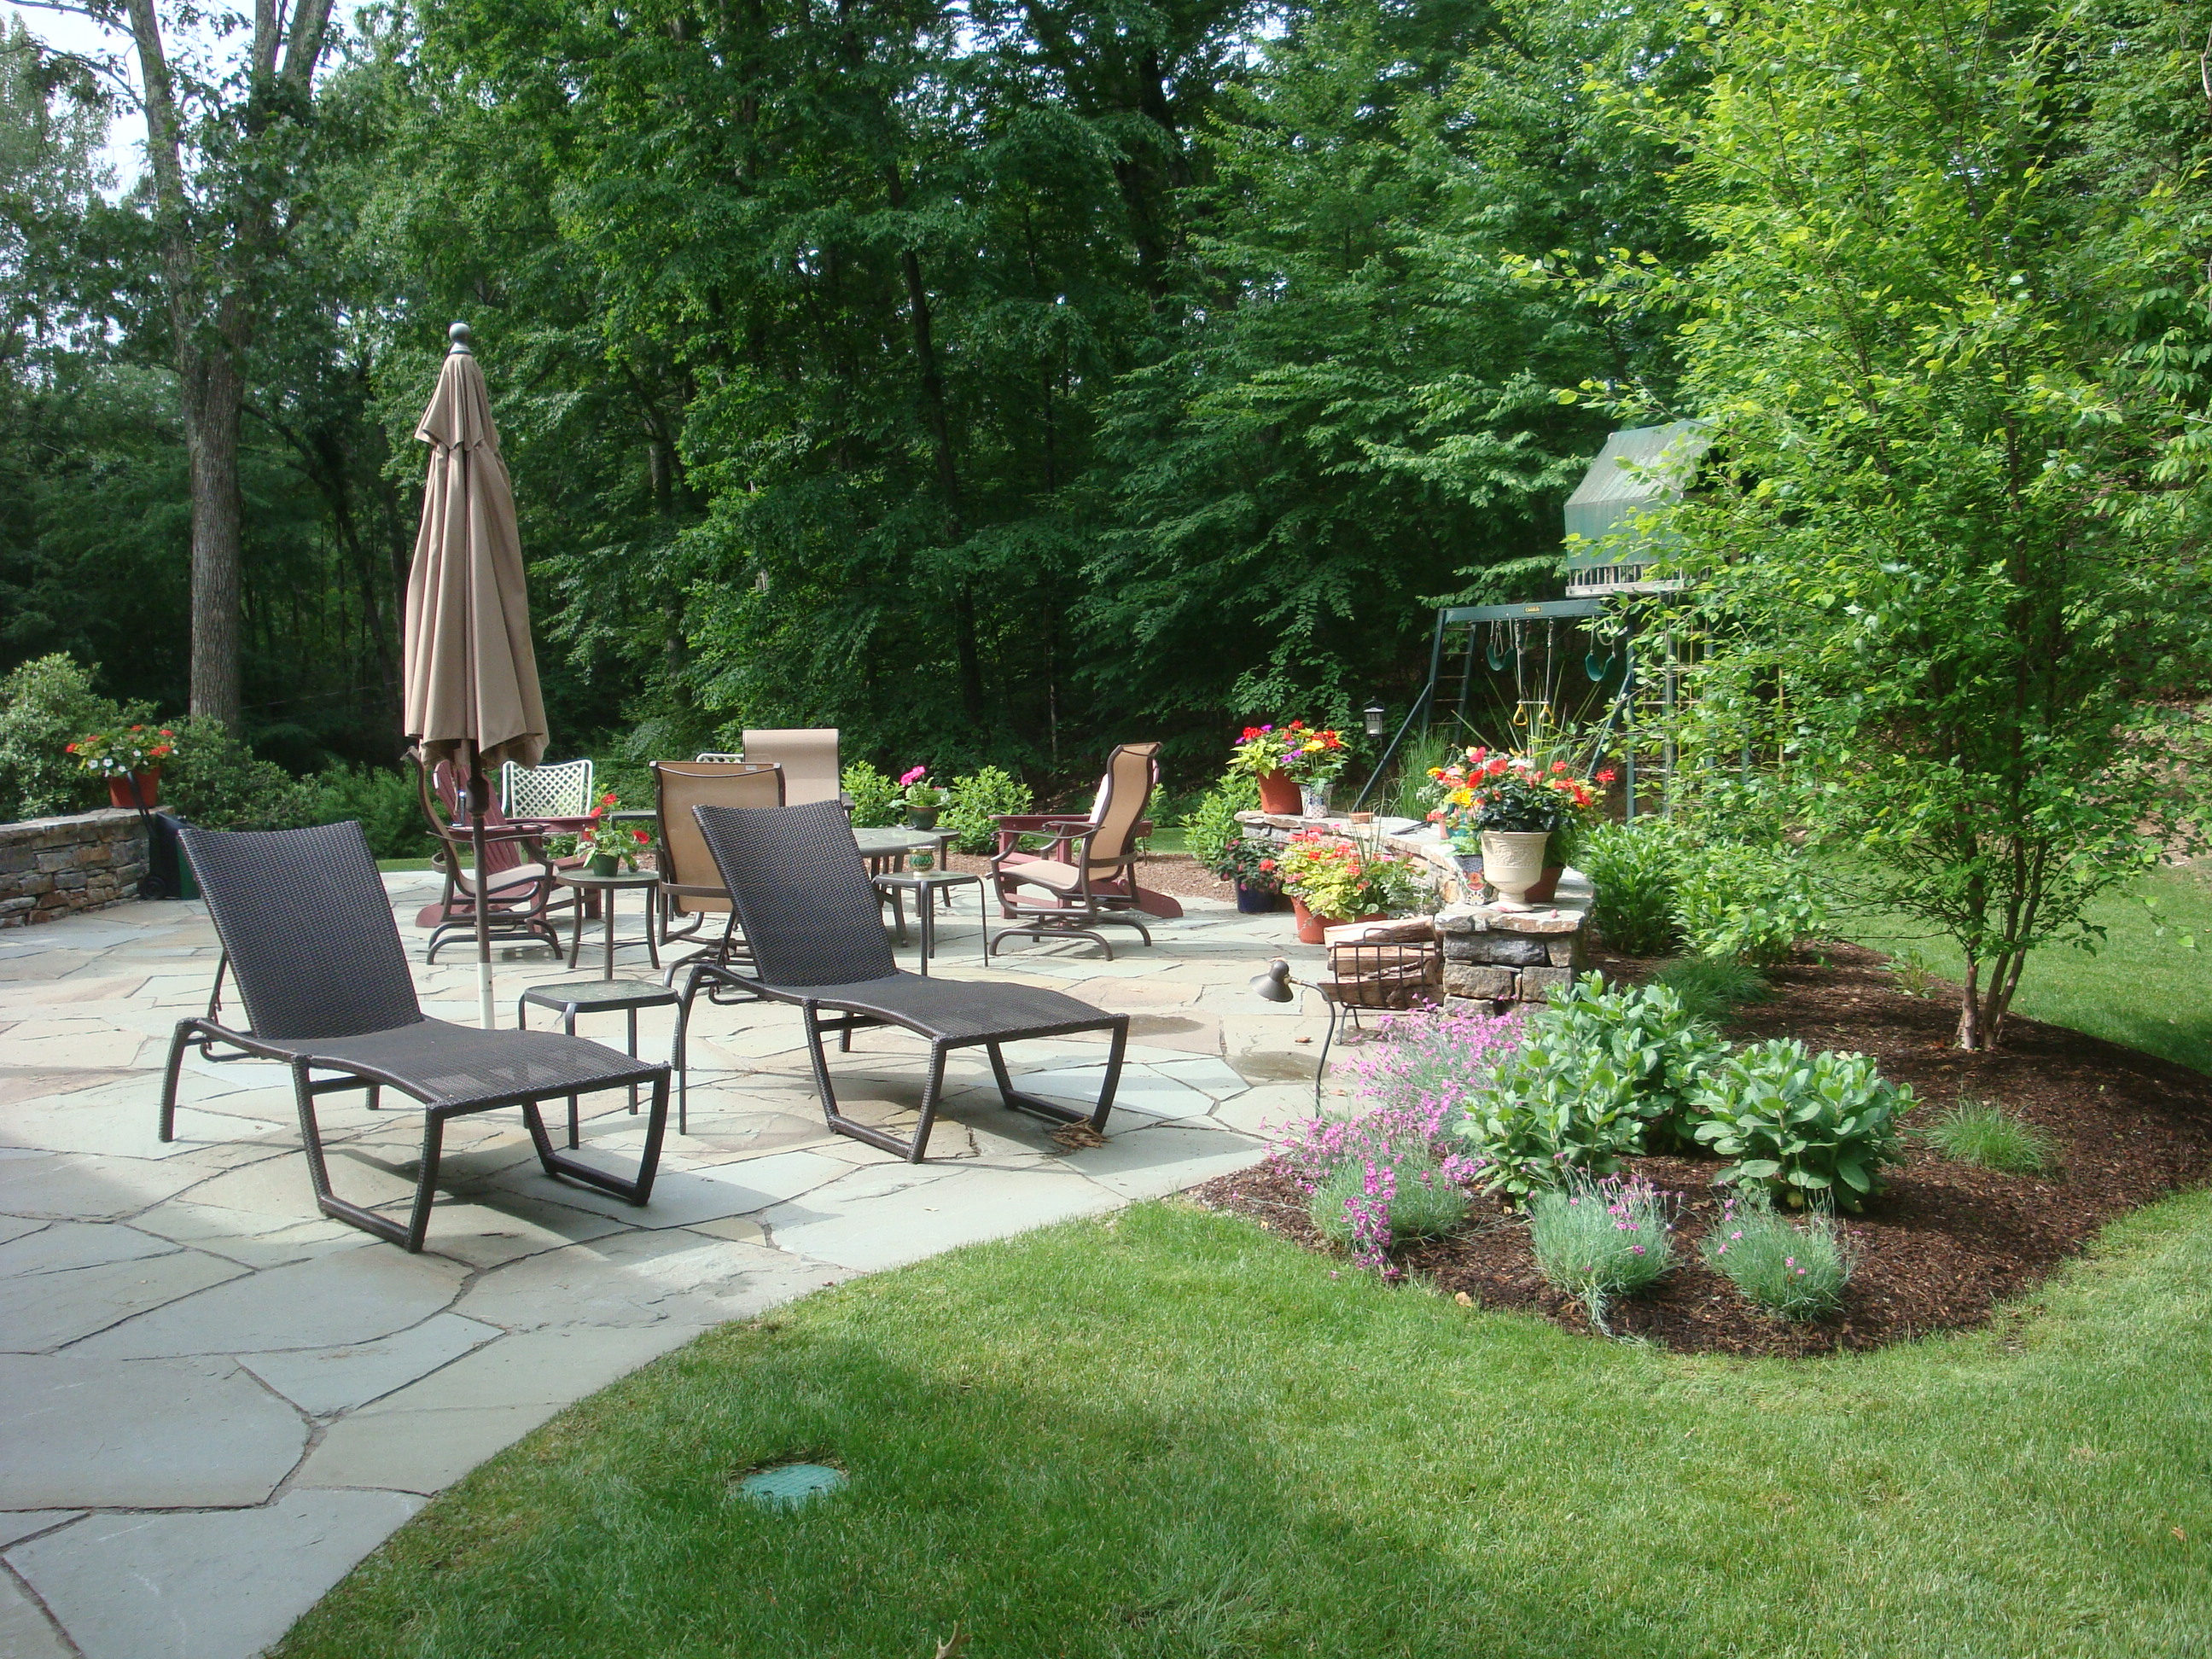 Patios garden designers roundtable for Patio garden ideas designs